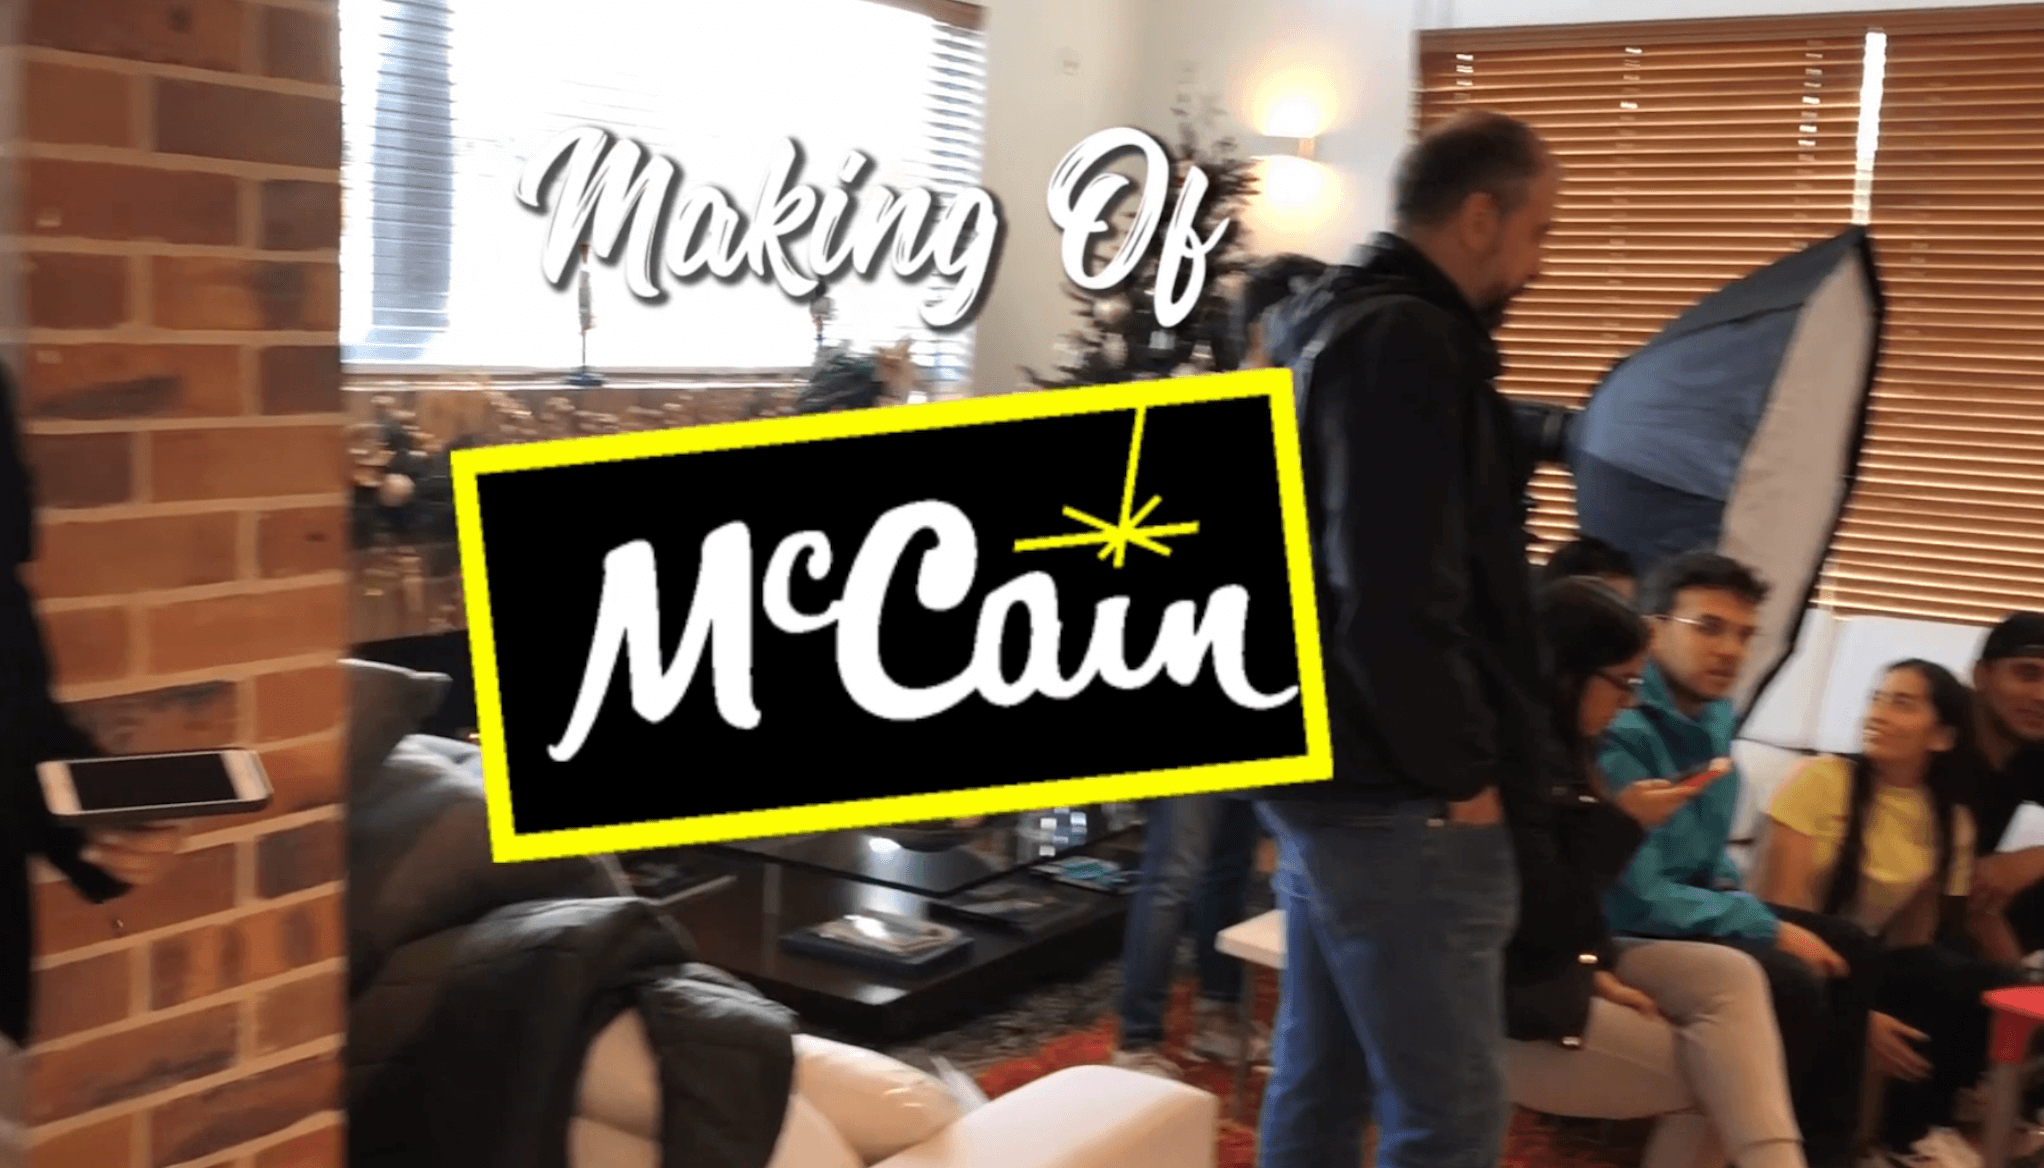 making of mccain